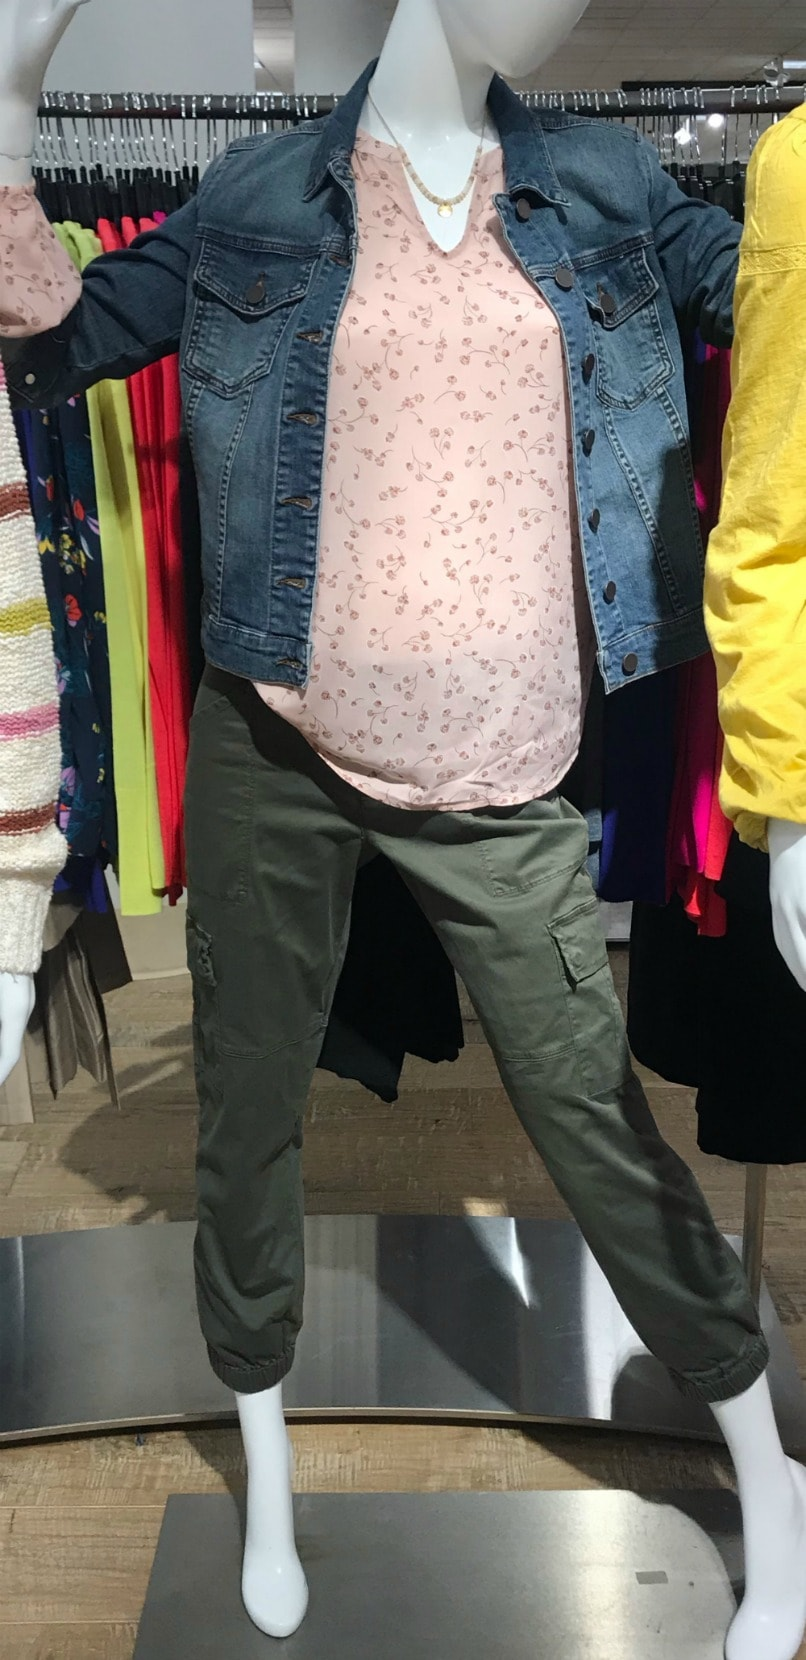 mannequin wearing denim jacket and cargo pants